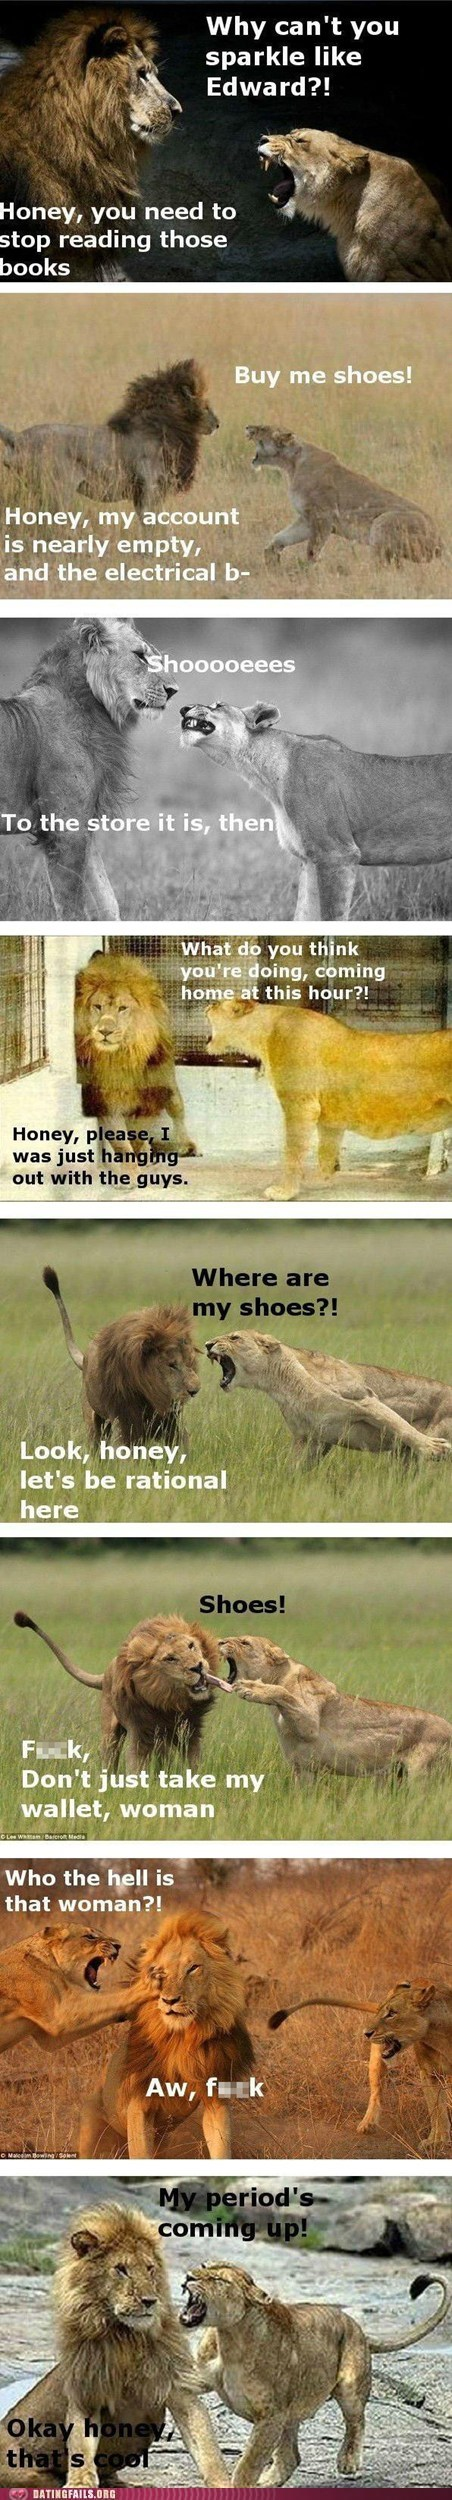 animals,Cats,controlling,dating,lions,relationships,shoes